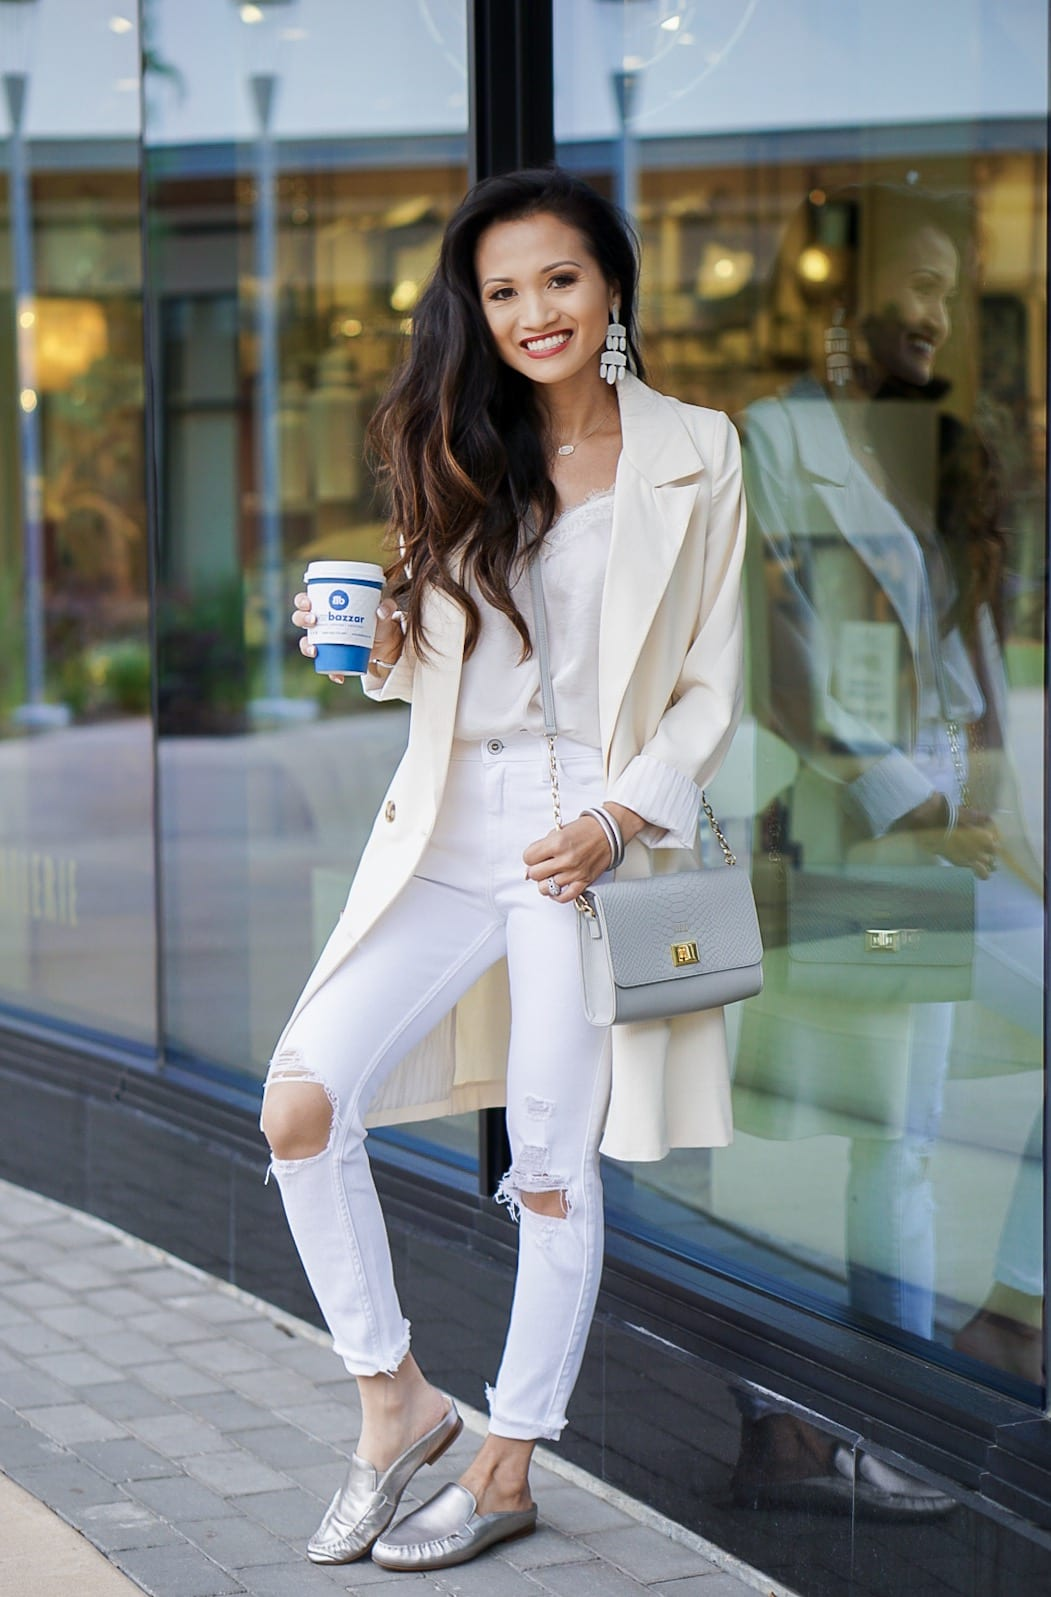 #movefor #inspiredsteps #sponsored #zappso, easy spirit Crellin, mules, loafers, Zappos, dress for success, white blazer, white jeans, Gigi New York crossbody bag, Kendra Scott earrings